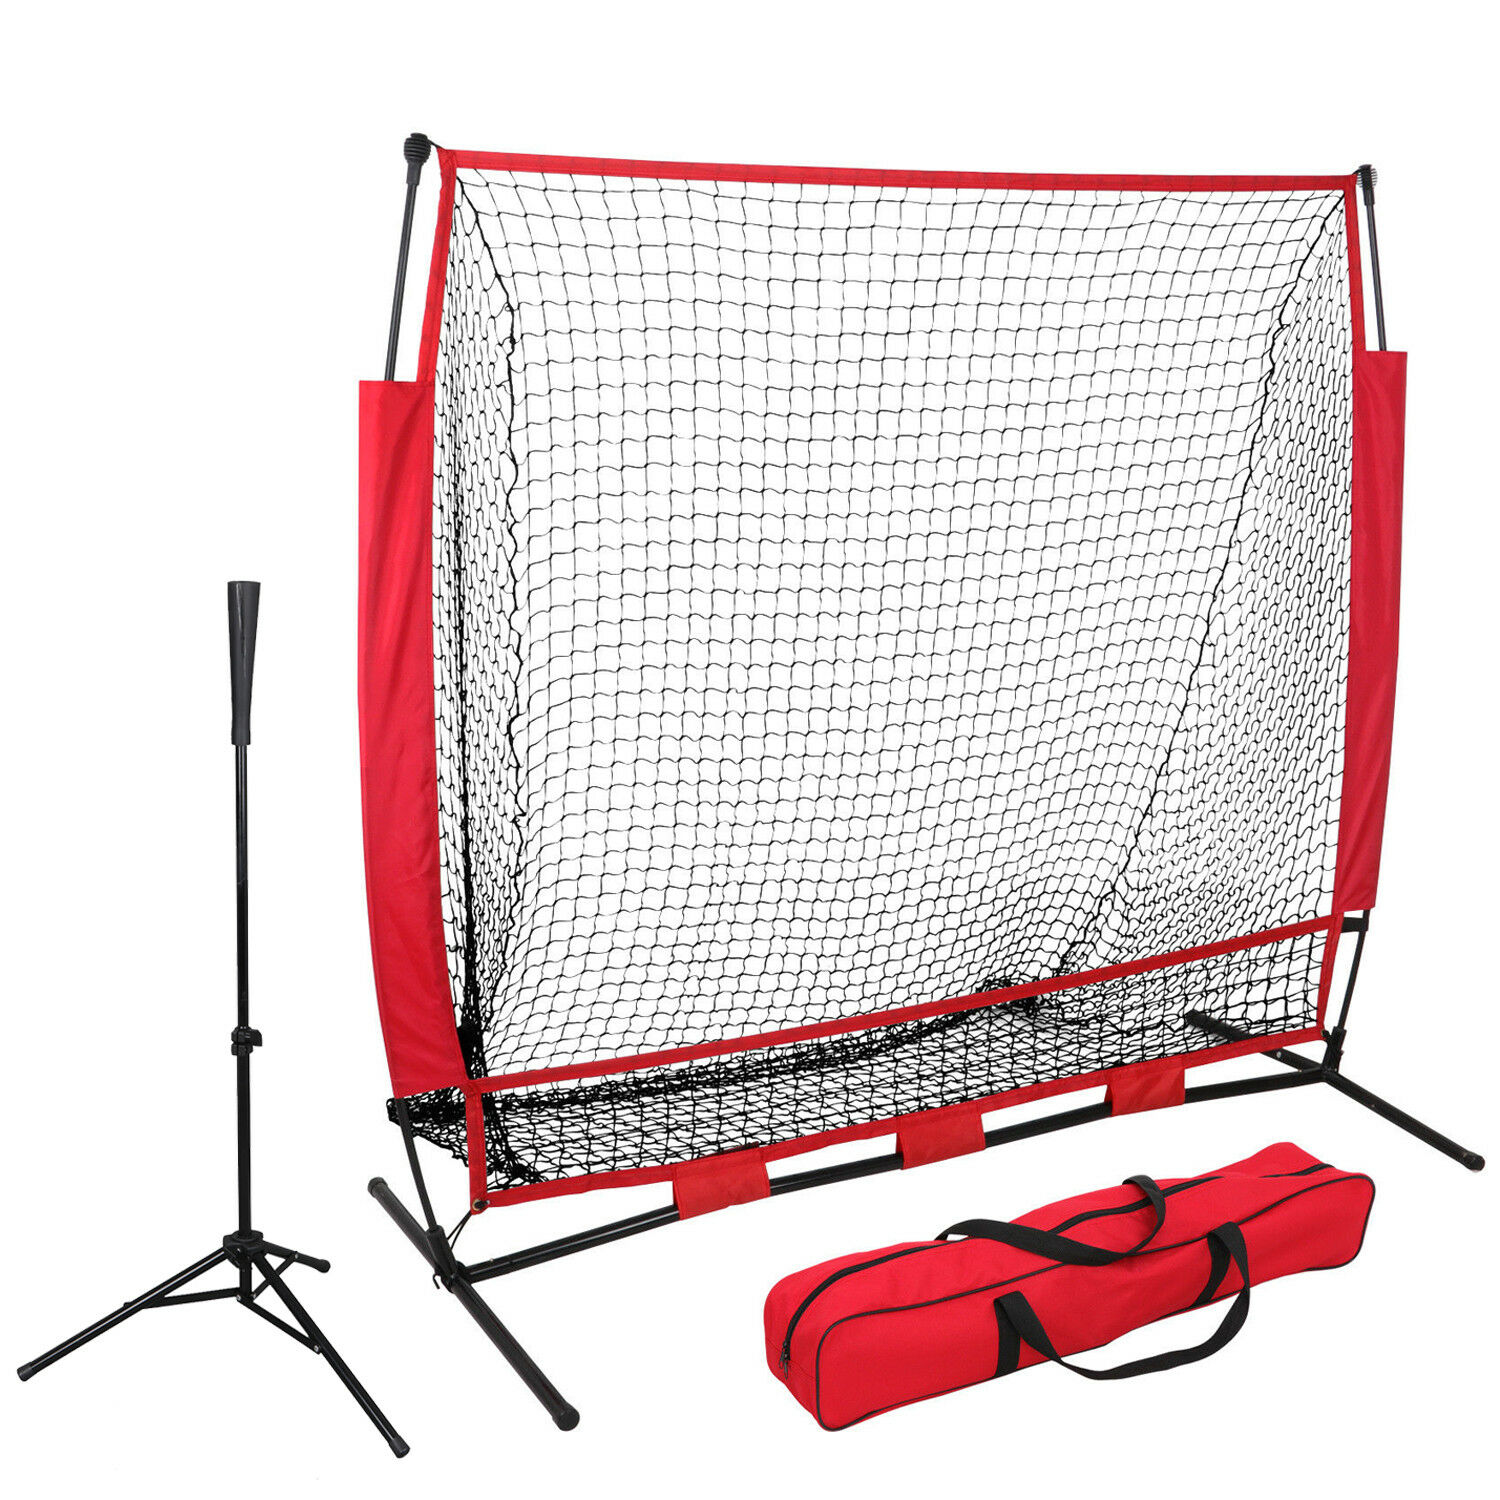 5'×5' Commercial Grade Heavy Duty Baseball Practice Net + Pro-Style Batting Tee